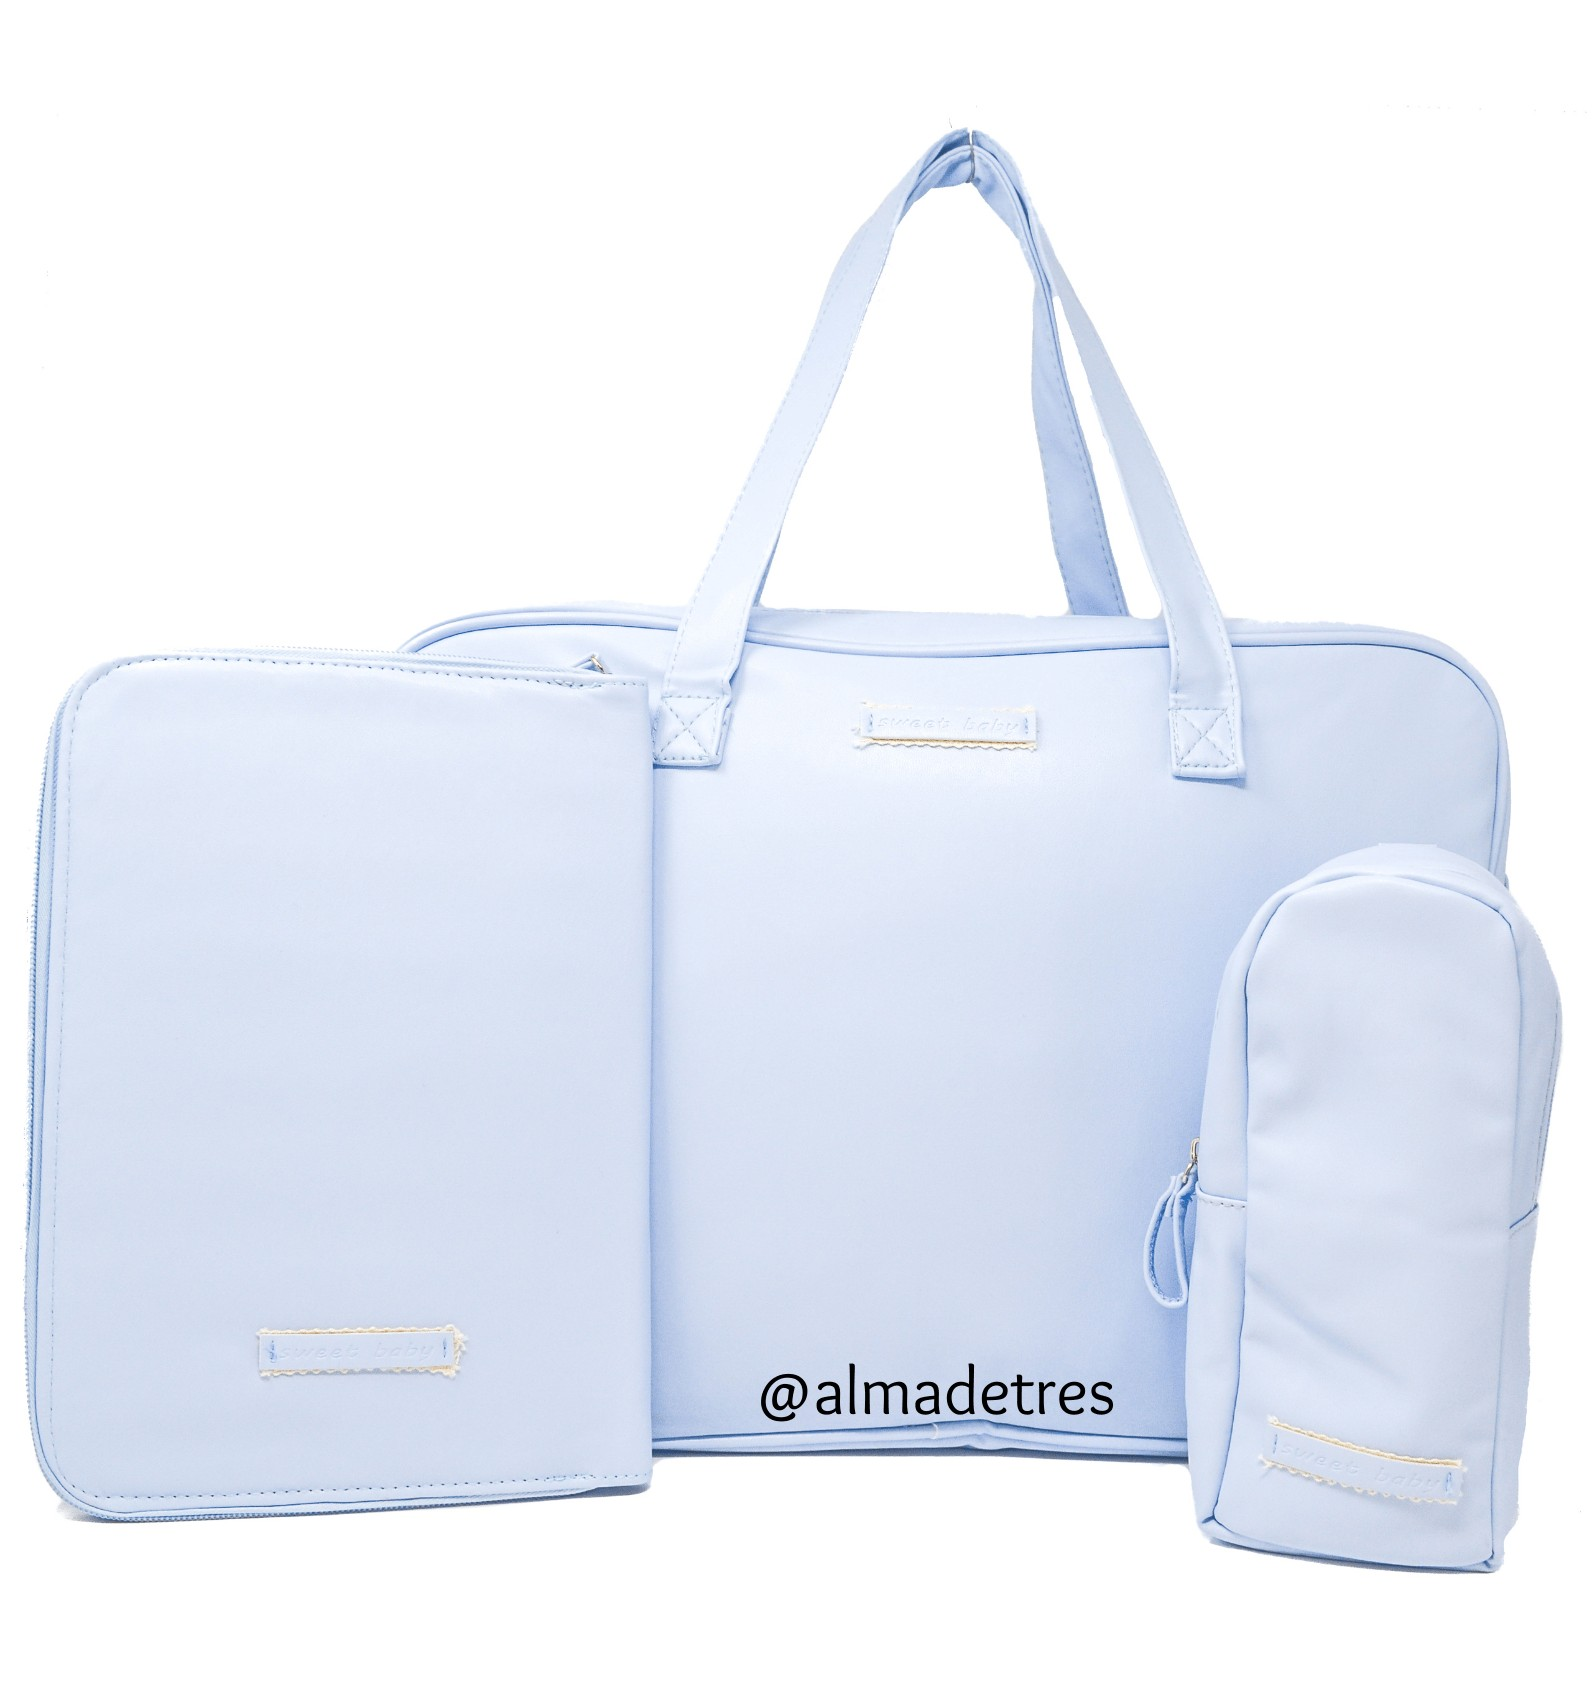 Bolso maternal bebé, Funda cartilla sanitaria, Guarda biberones